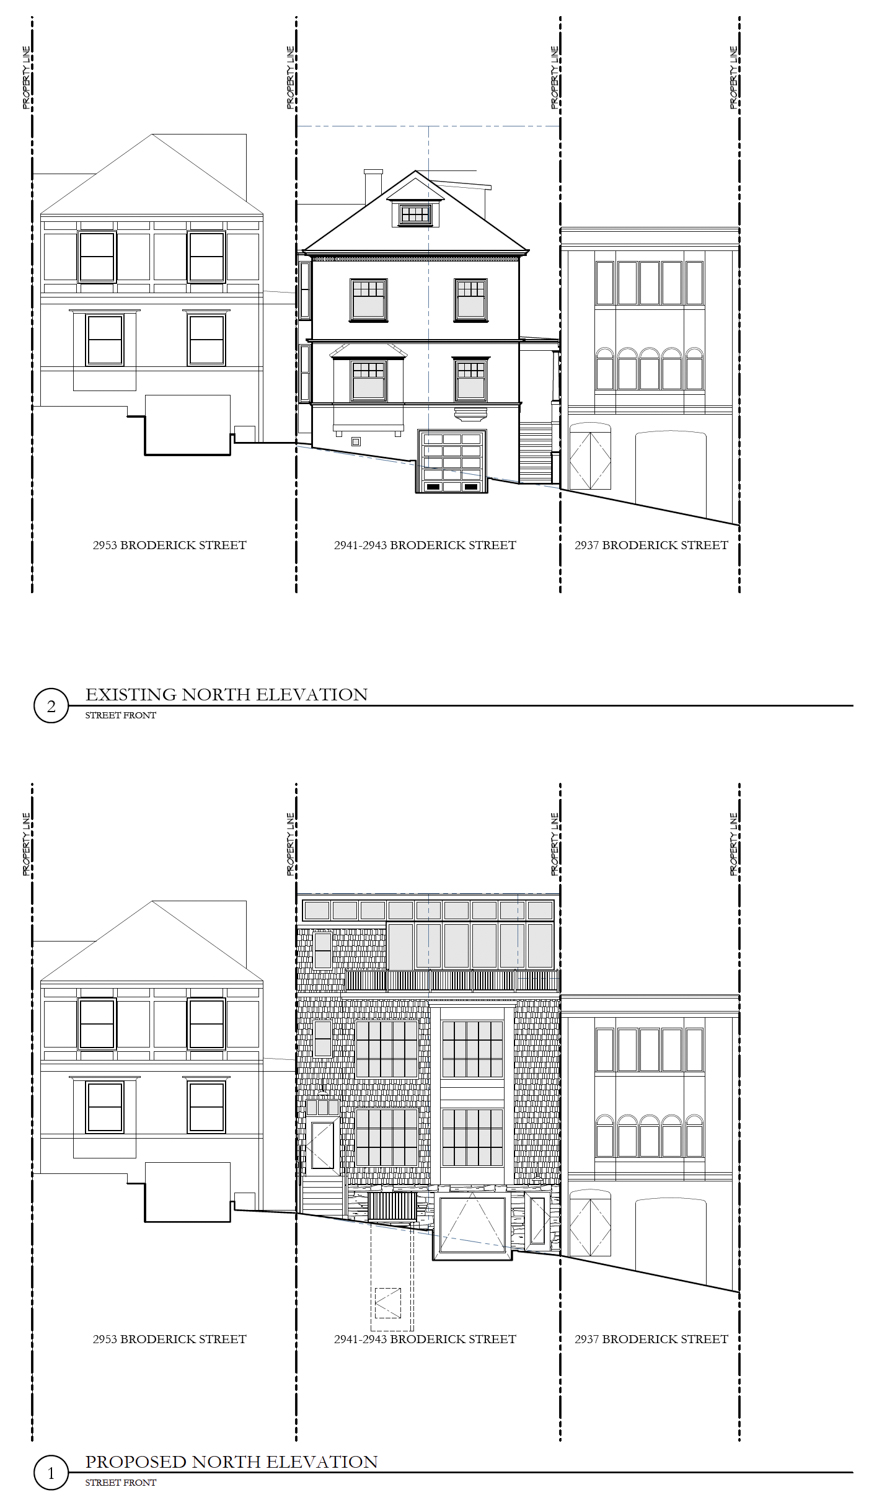 2941 Broderick Street before and after, design by Ken Linsteadt Architects